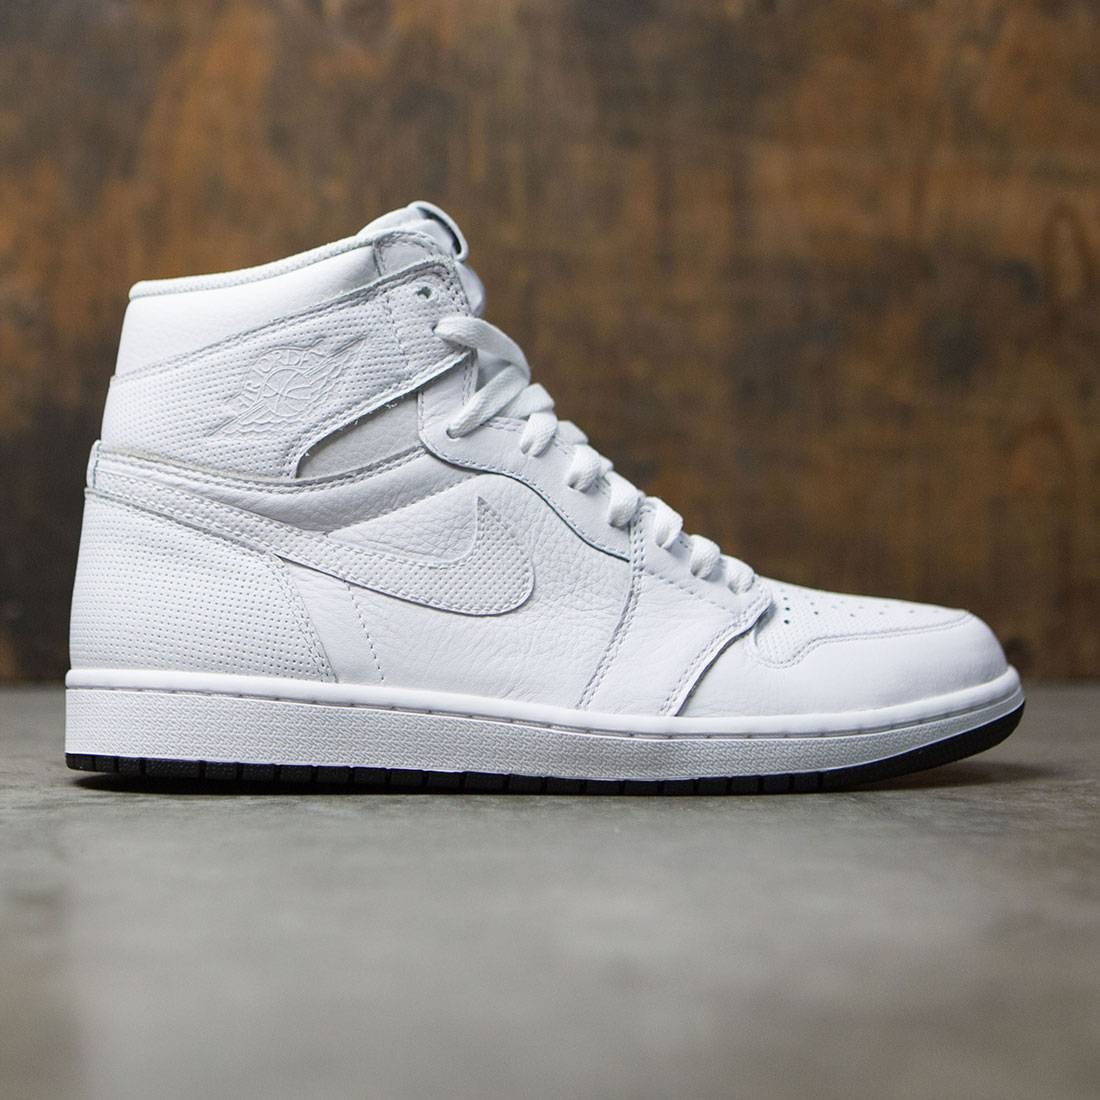 9d998f8b83f4 Jordan Men Air Jordan 1 Retro High OG (white   black-white)